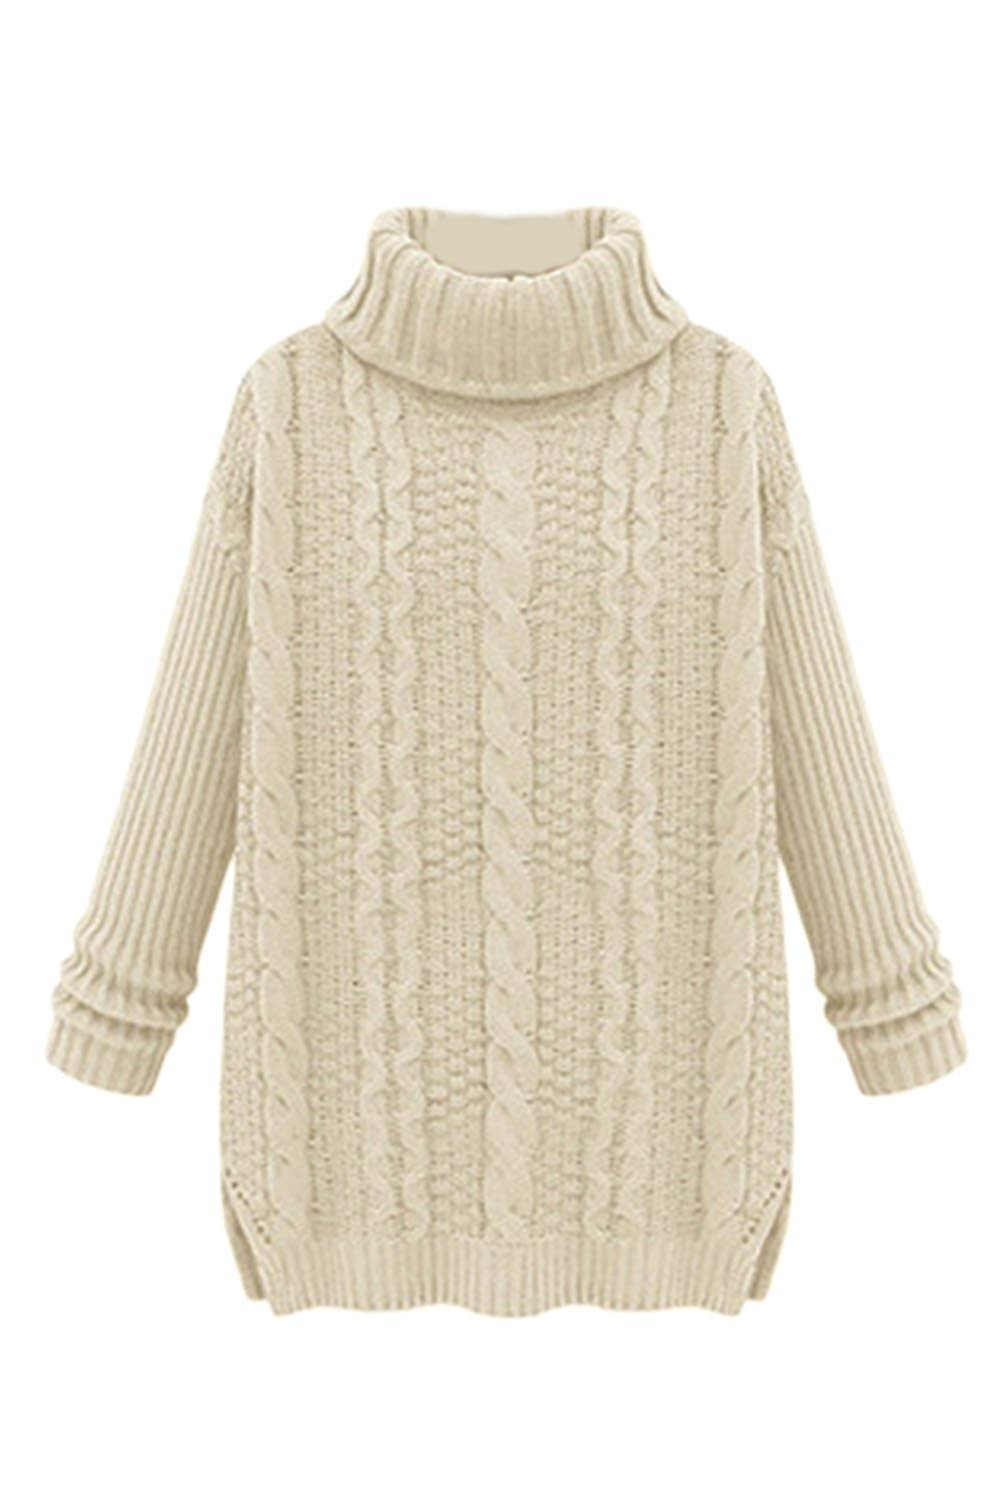 f8bfdfa933 Get Quotations · Women Warm Solid Turtleneck Knitted Rib Loose Knit Shirt  Sweater